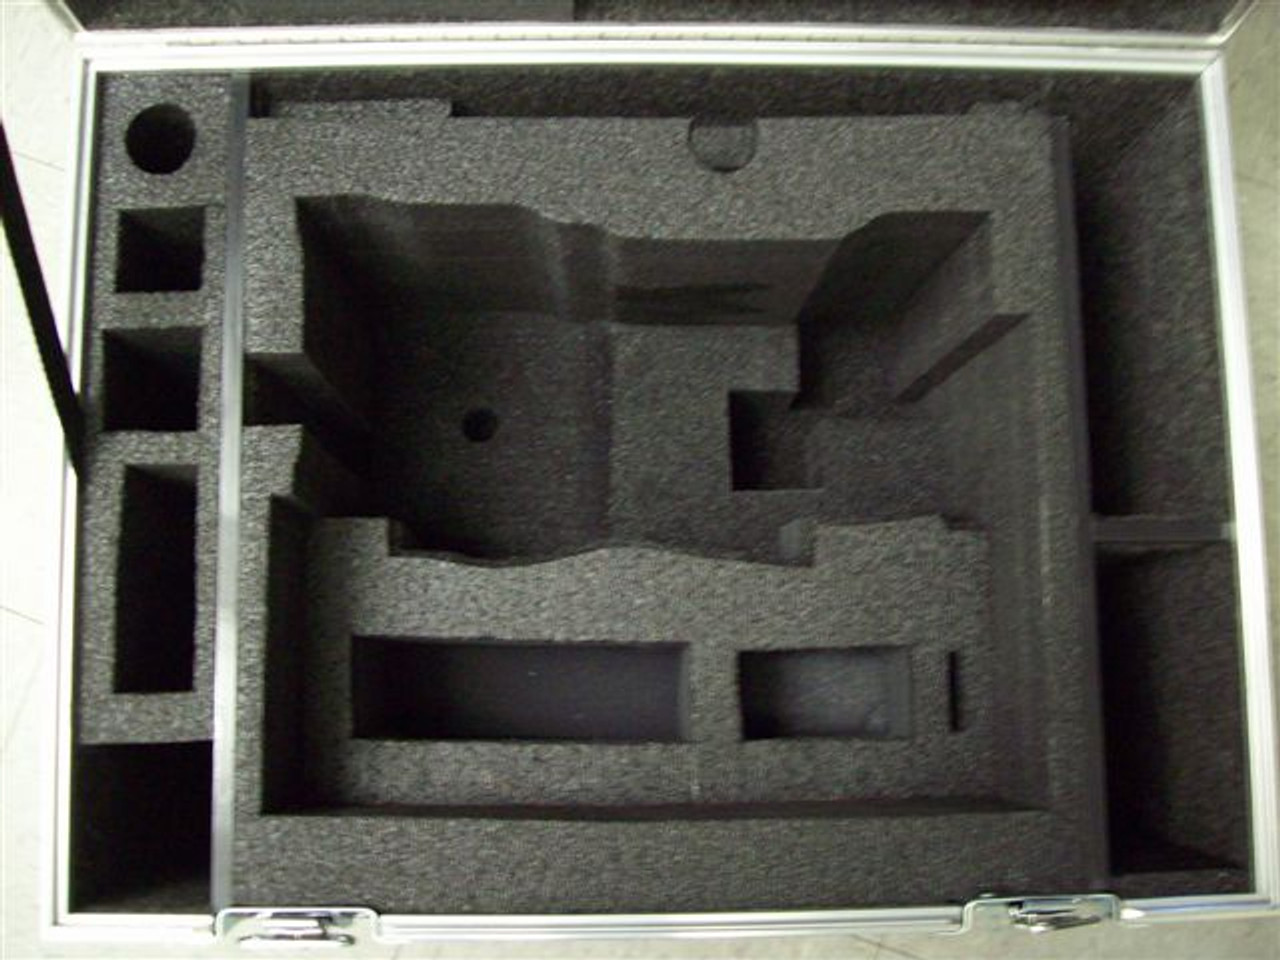 Alexa Camera ATA Shipping Case -- Interior View Base